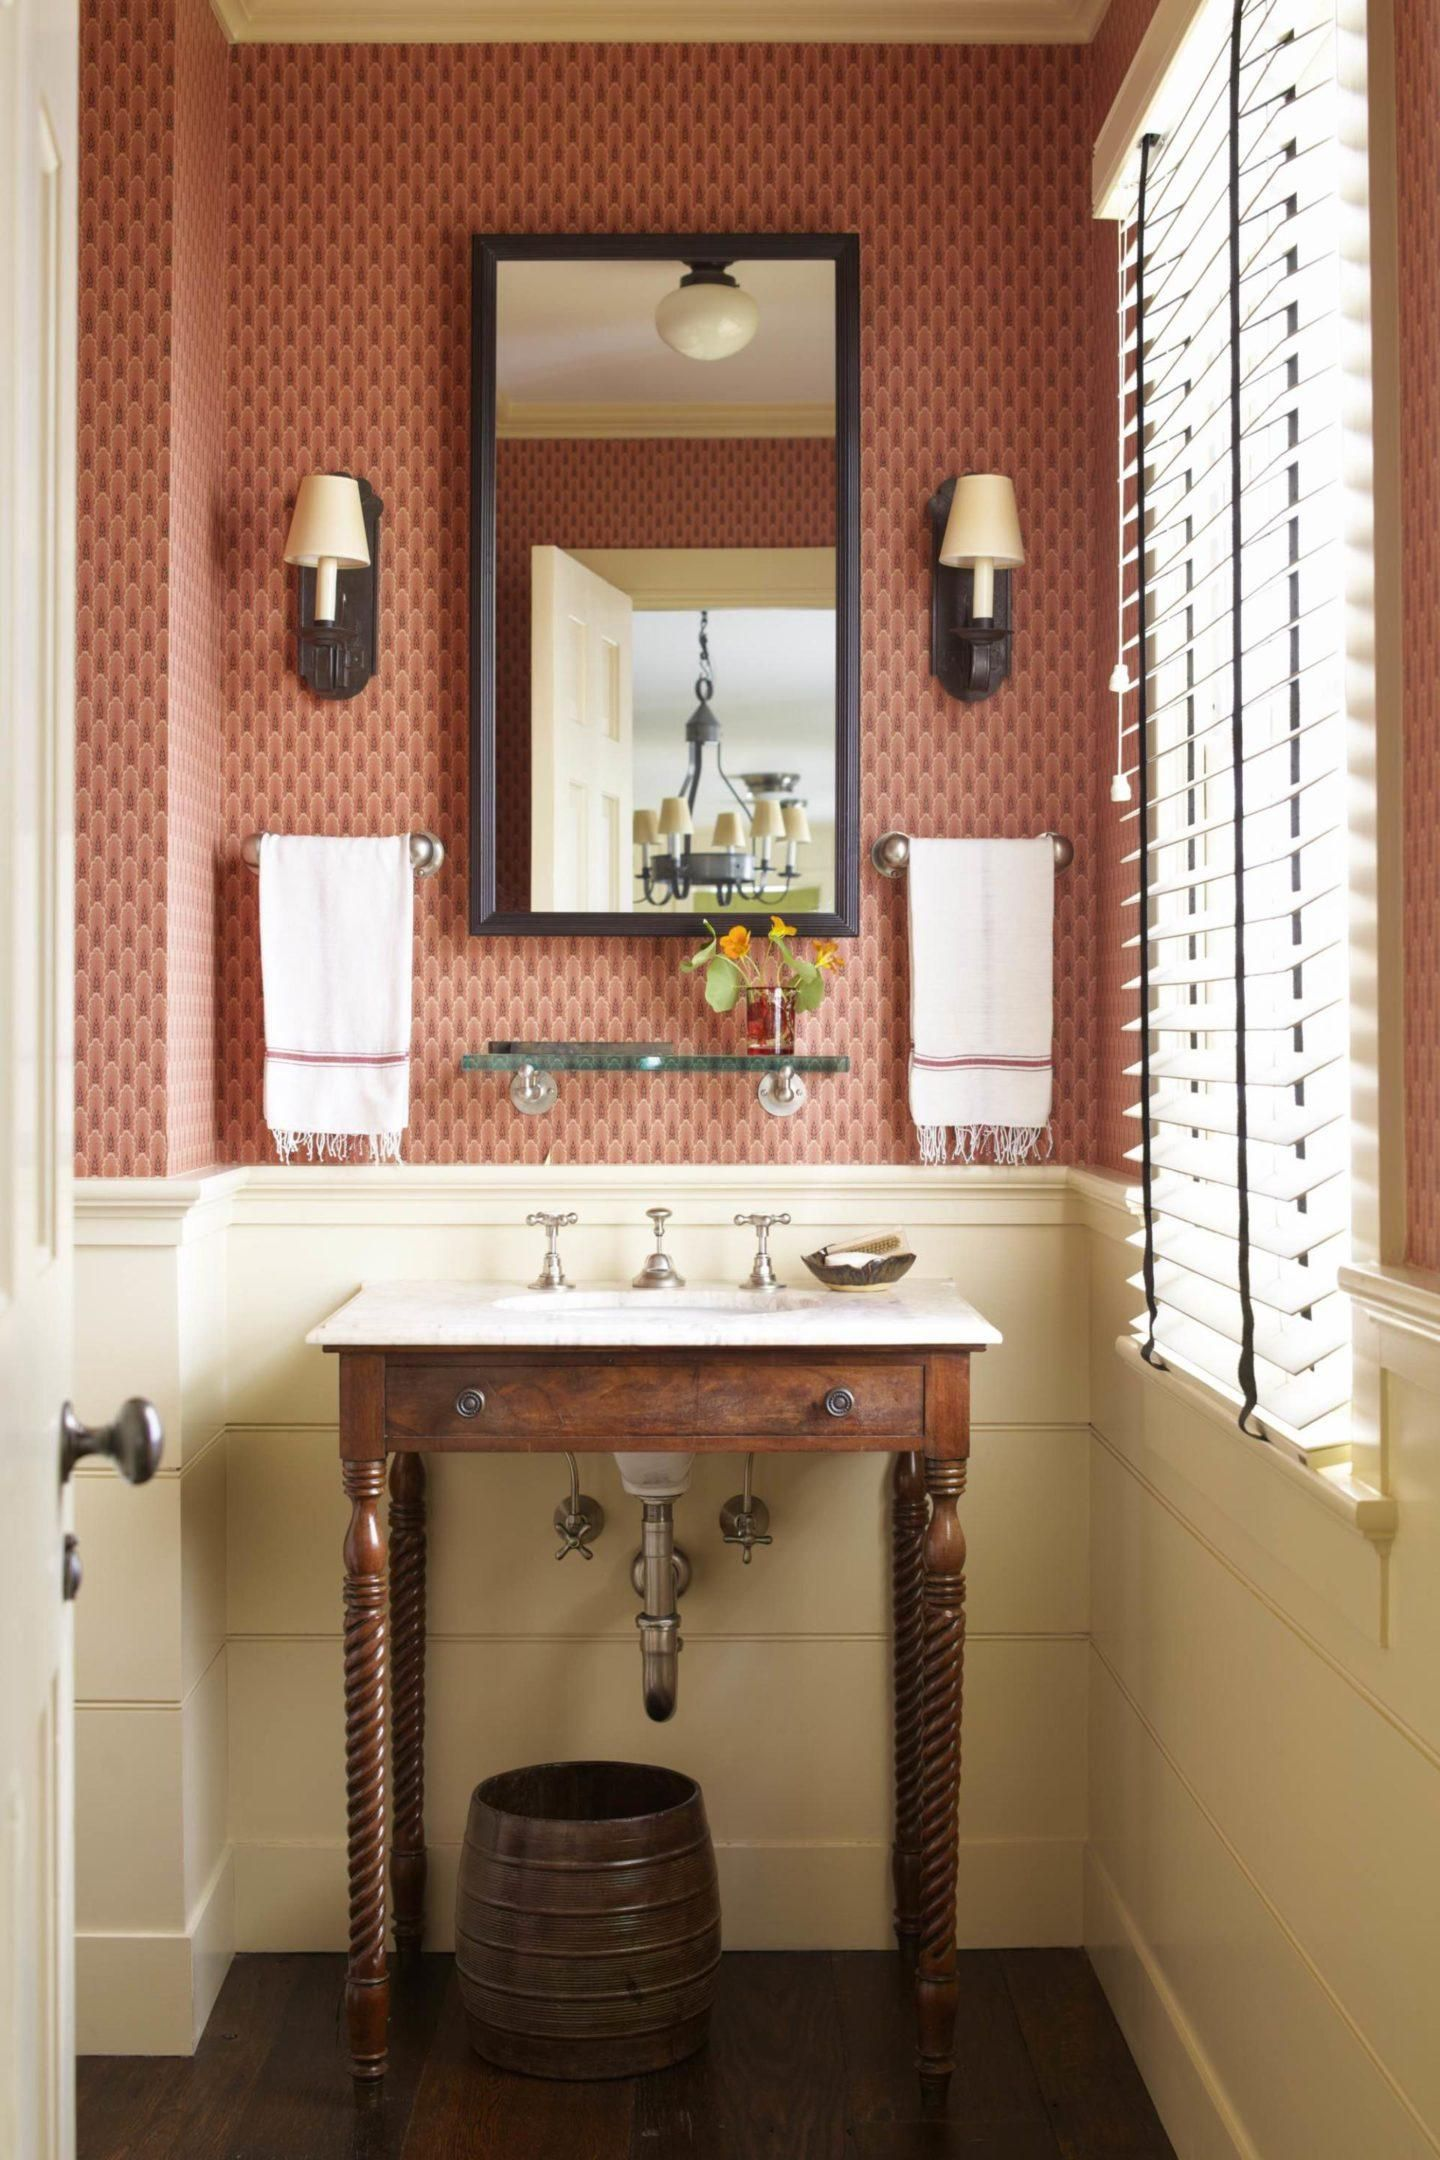 A New England Farmhouse By G P Schafer Architect In 2020 Bathroom Decor New England Farmhouse Bathrooms Remodel